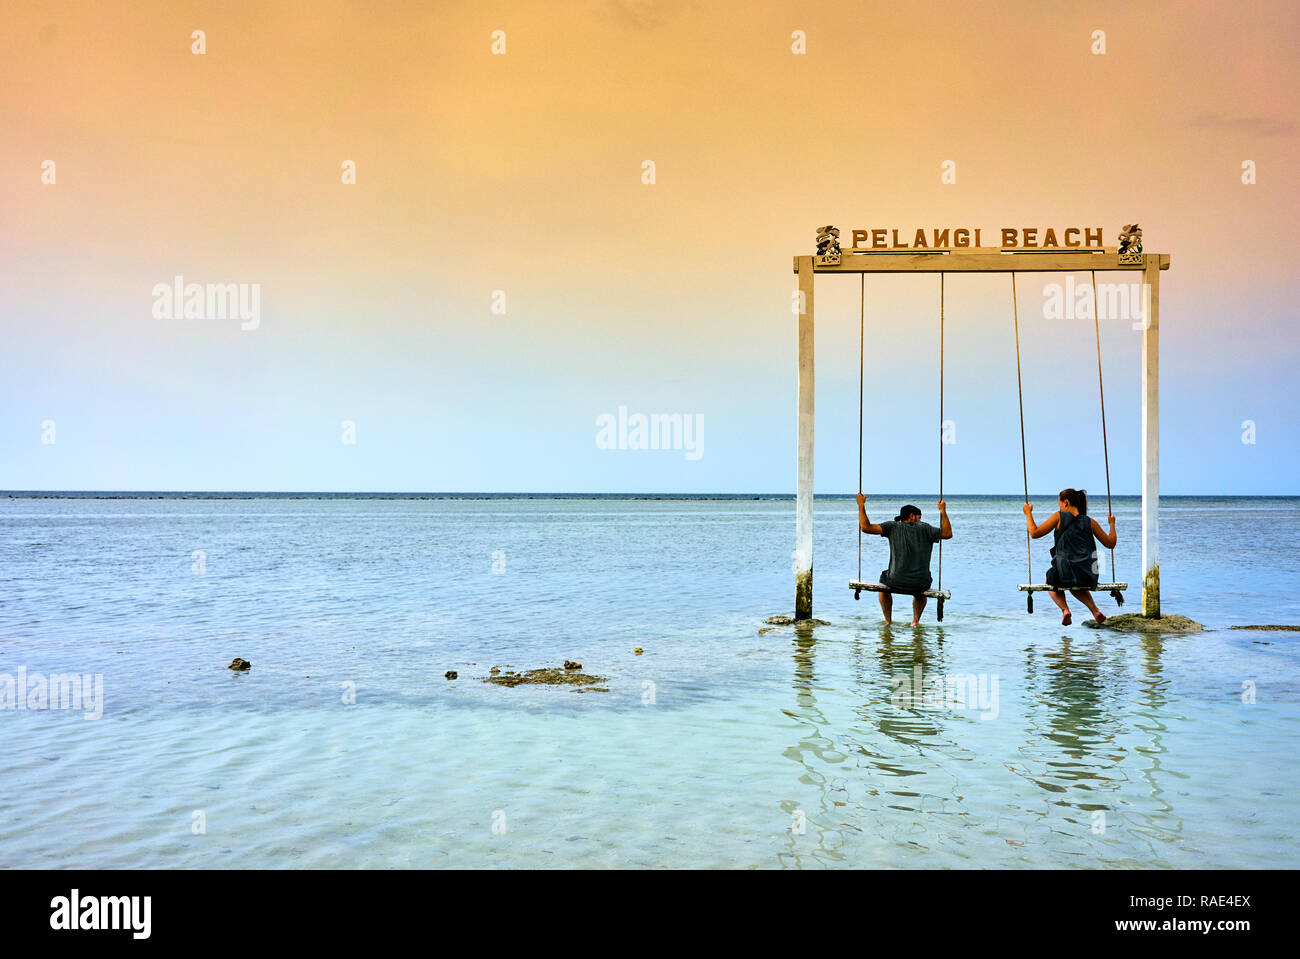 Sea swing at Pelangi beach on Gili Air, West Nusa Tenggara, Indonesia, Southeast Asia, Asia - Stock Image